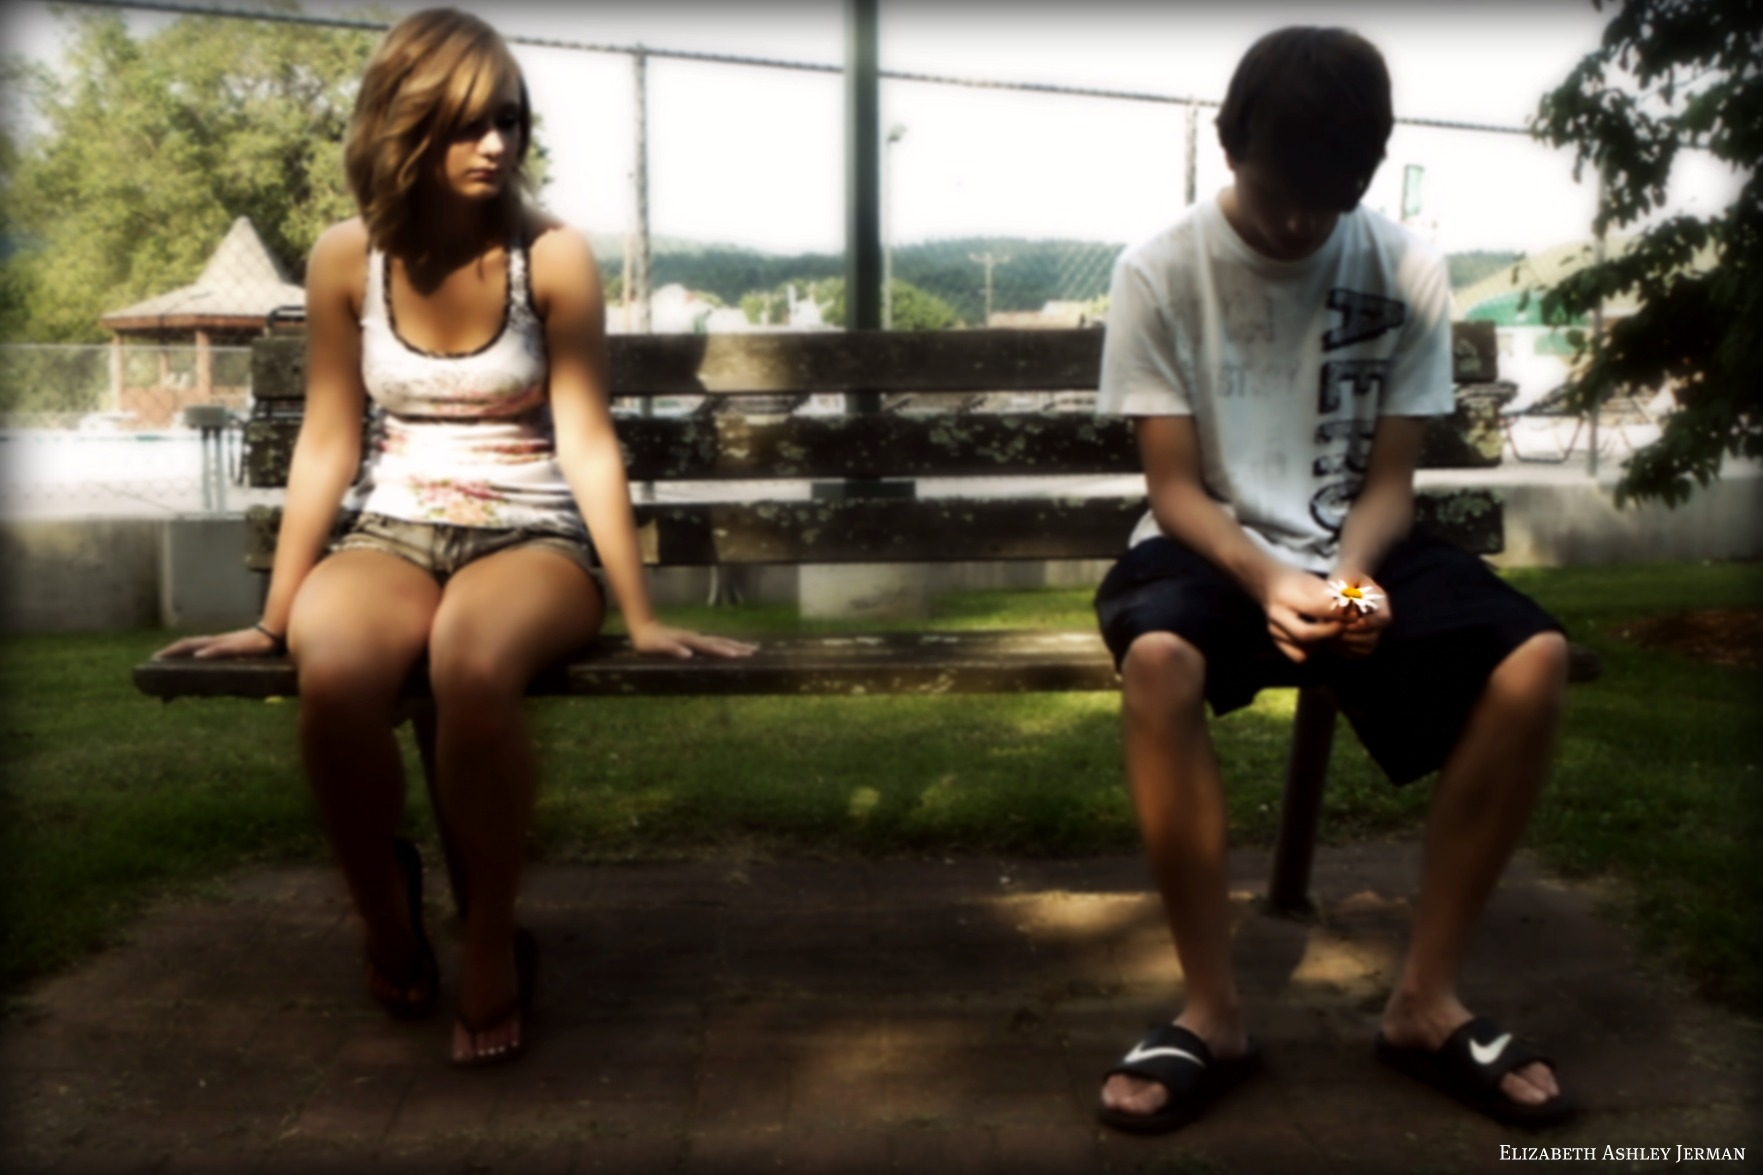 Young couple sitting apart on park bench - ¿Por qué somos infieles?